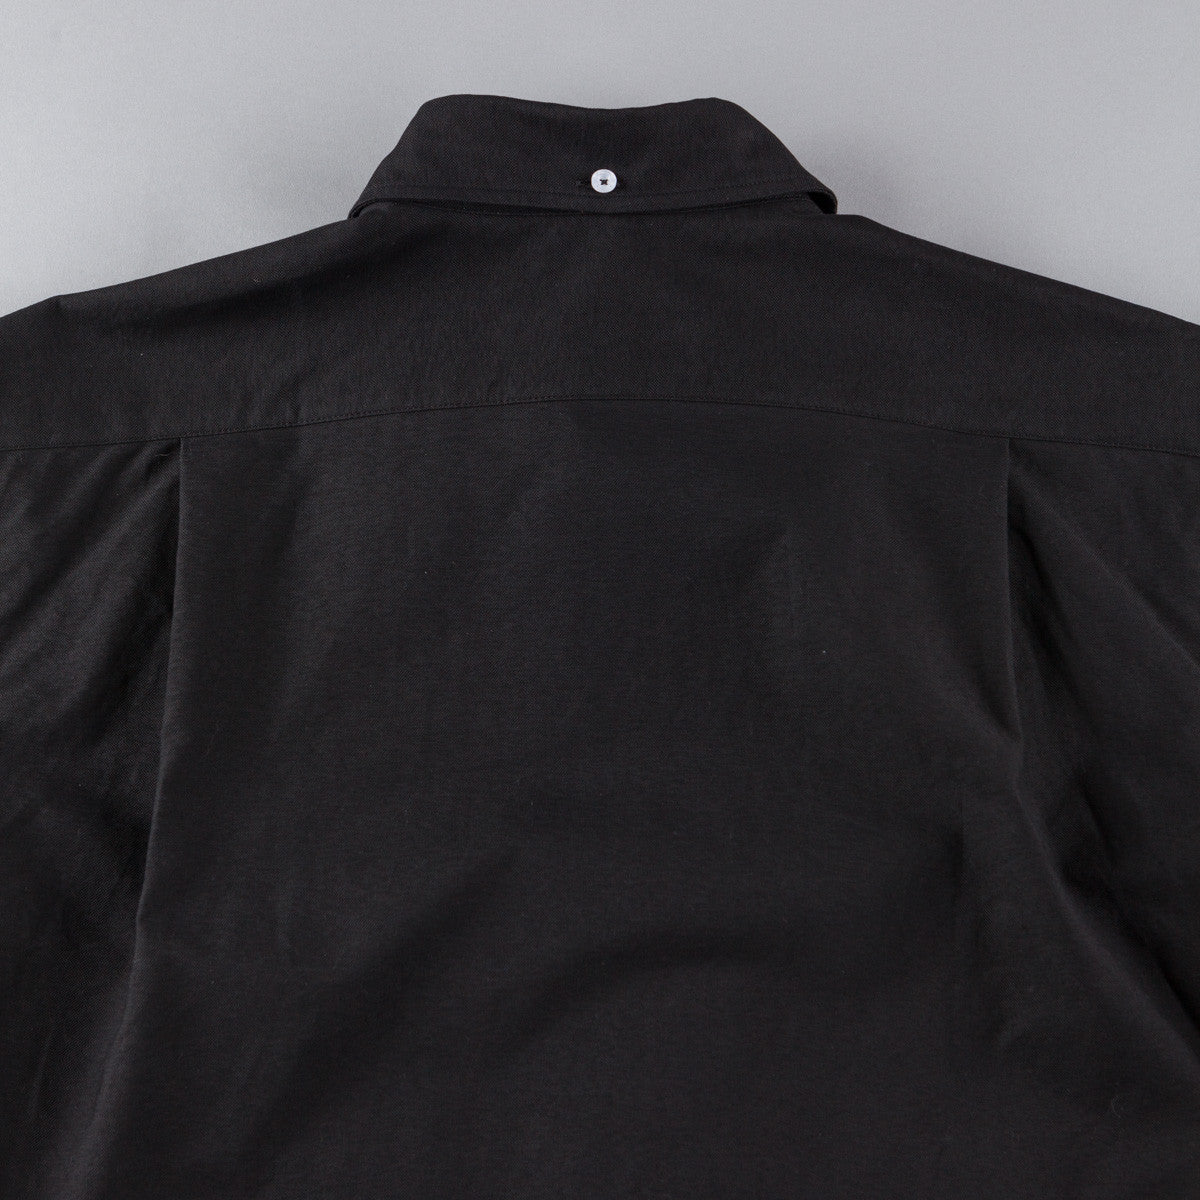 Polar PSC Short Sleeve Shirt - Black